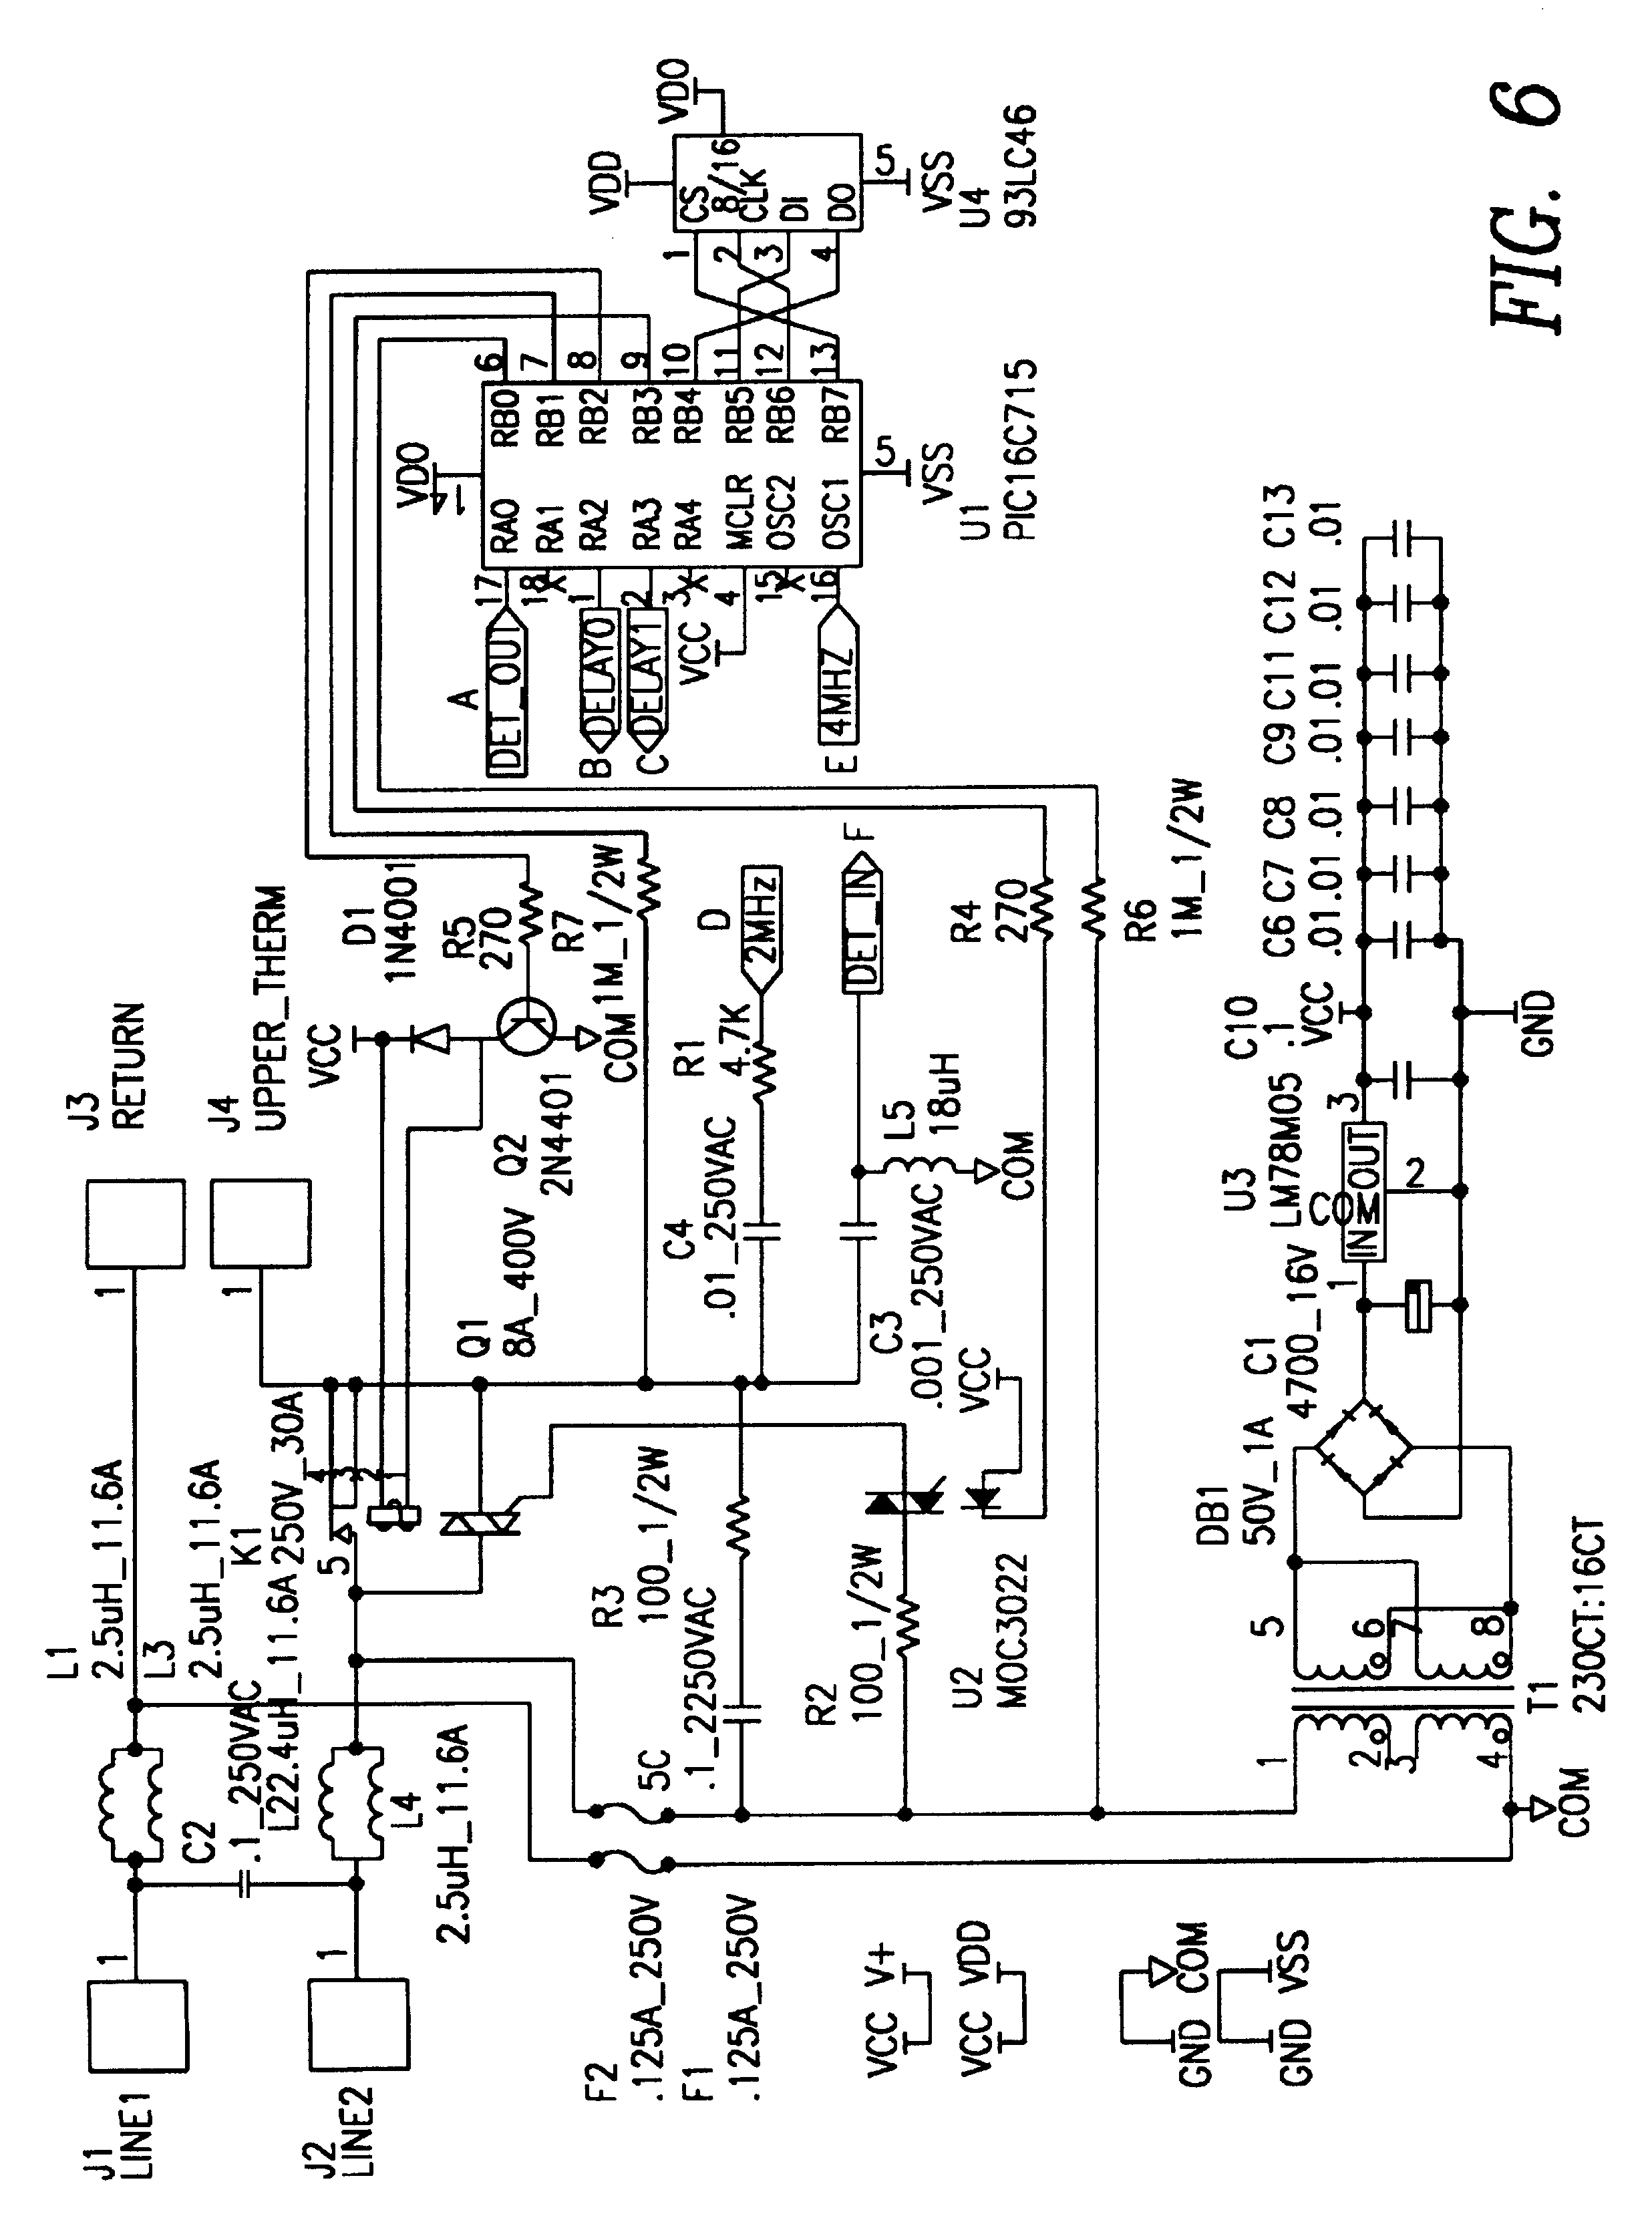 hatco wiring diagram Download-Luxury Whelen 295hfsa1 Wiring Diagram Ornament Wiring Diagram 7-g